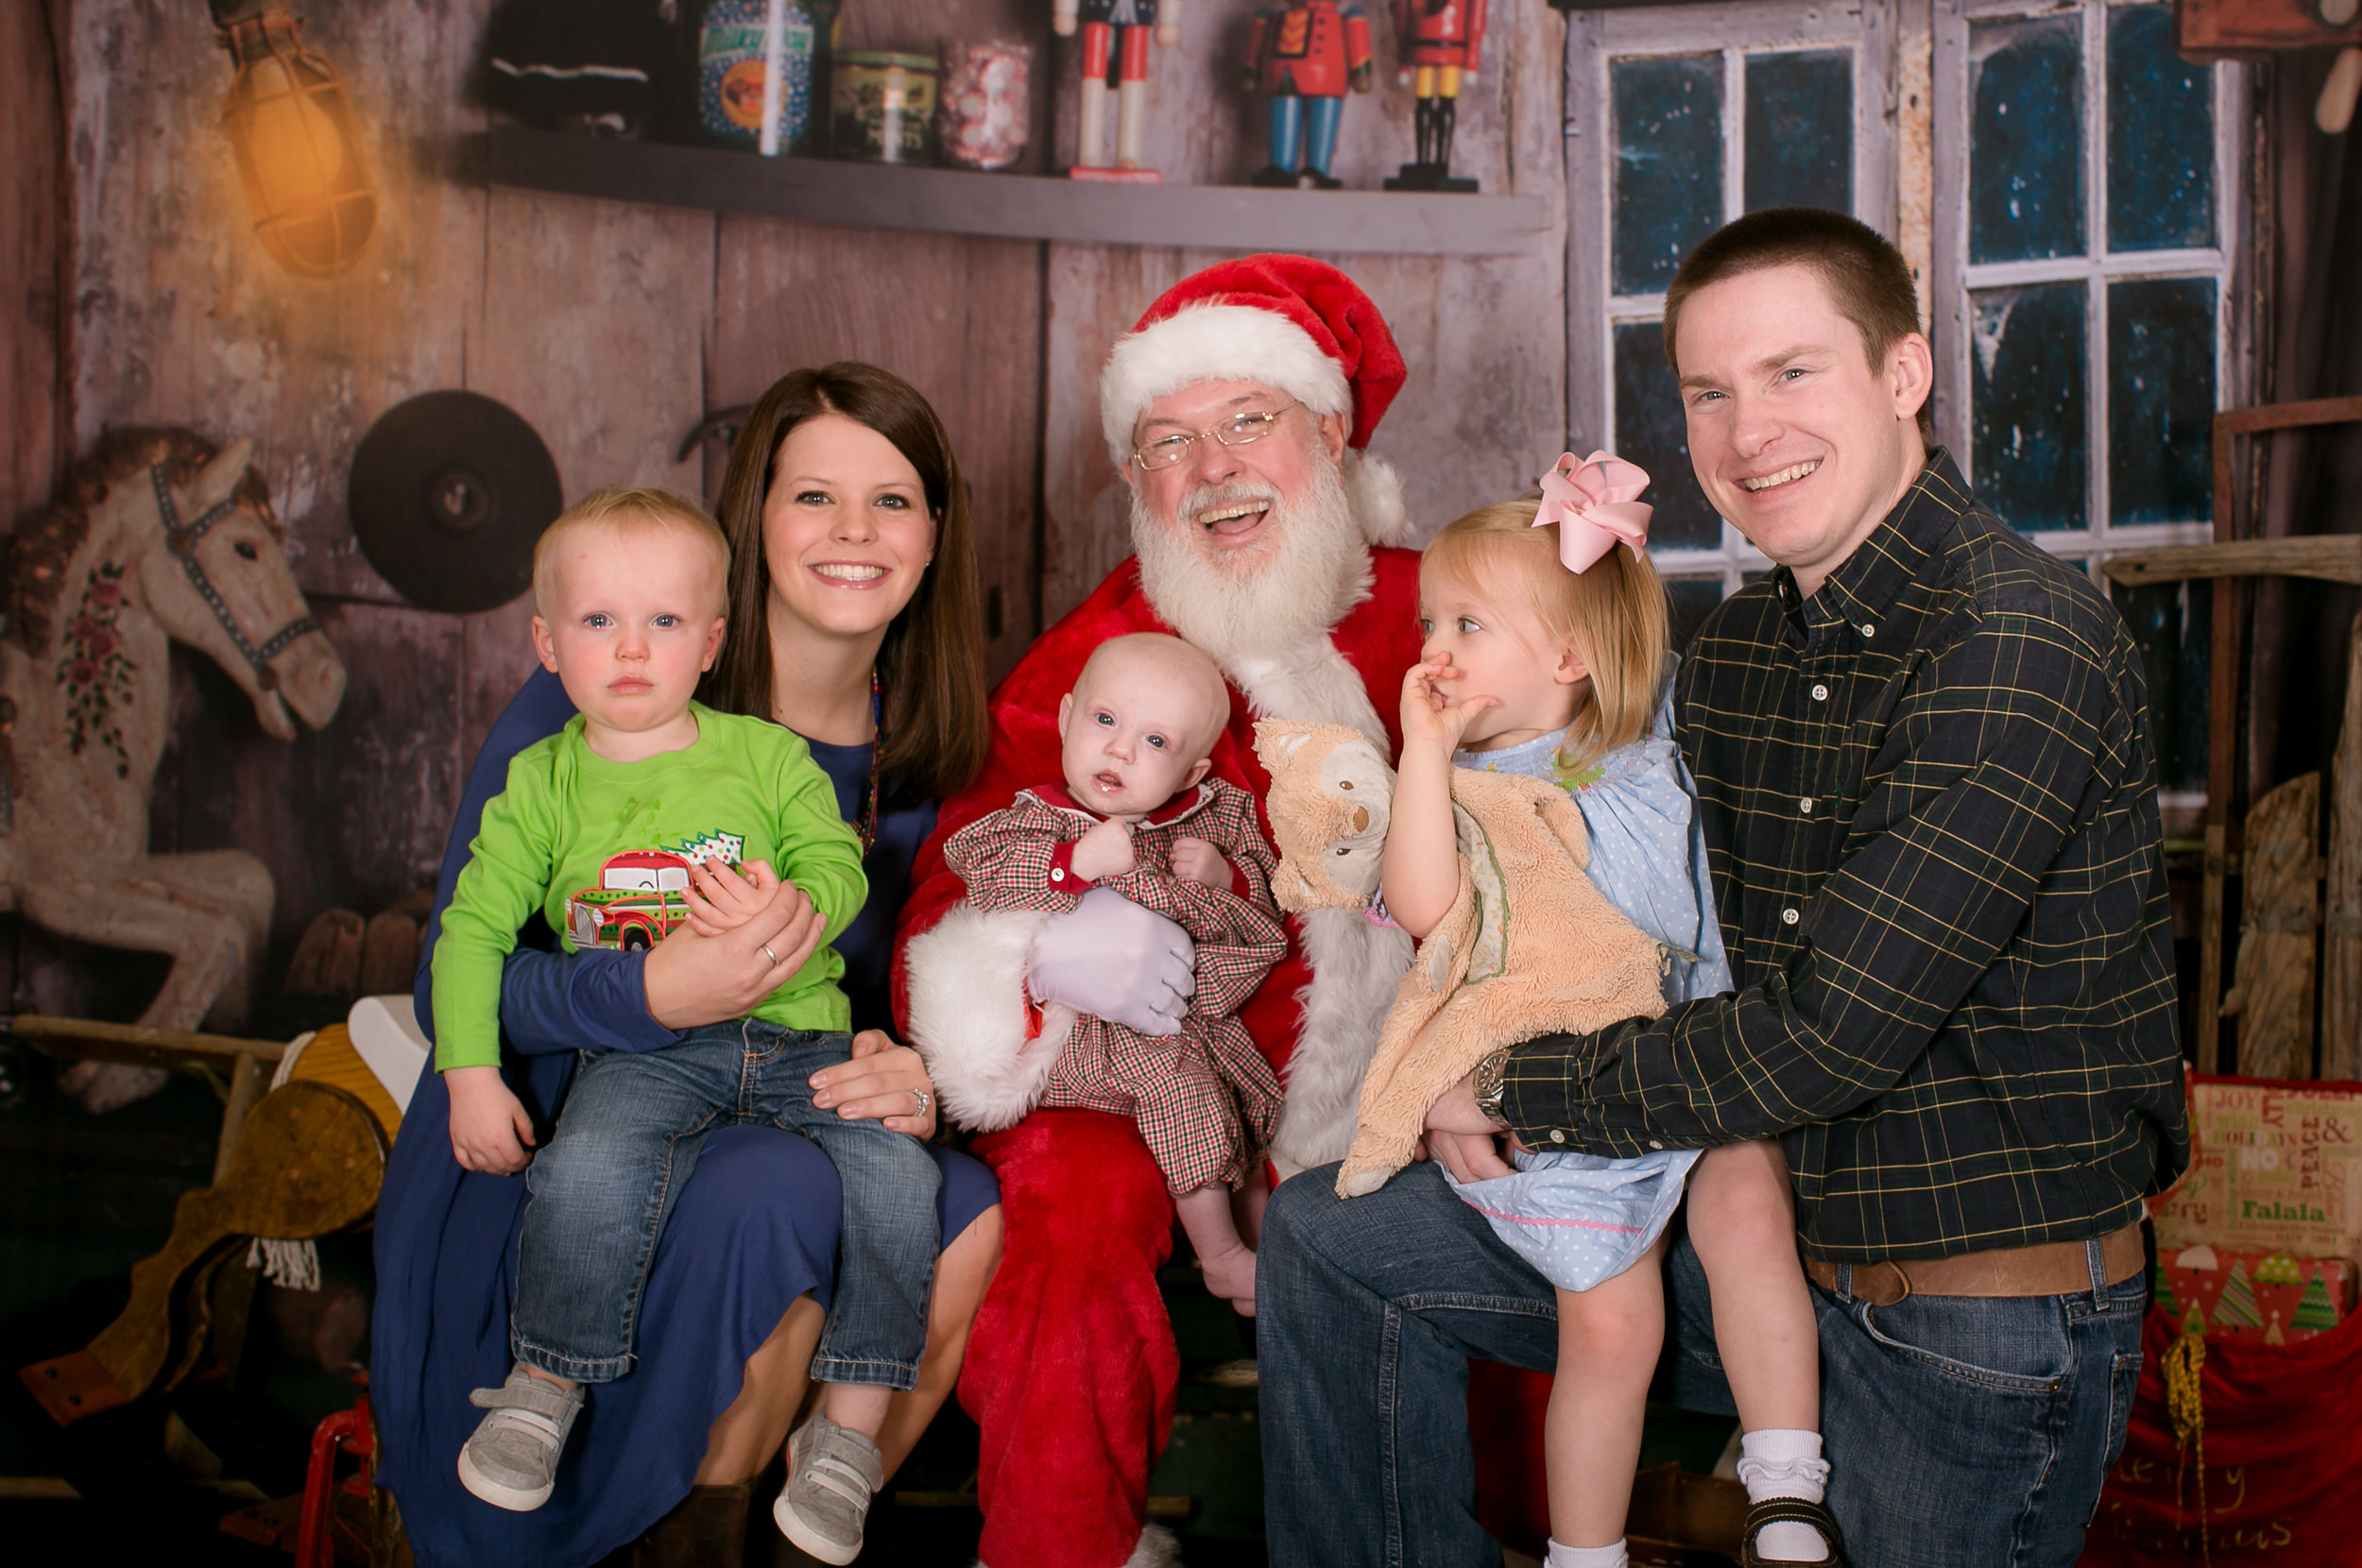 Chelsea and Wade (New Baby, Santa and Andi (Baby Tres), and Eric and Abby Cate (Firecracker)